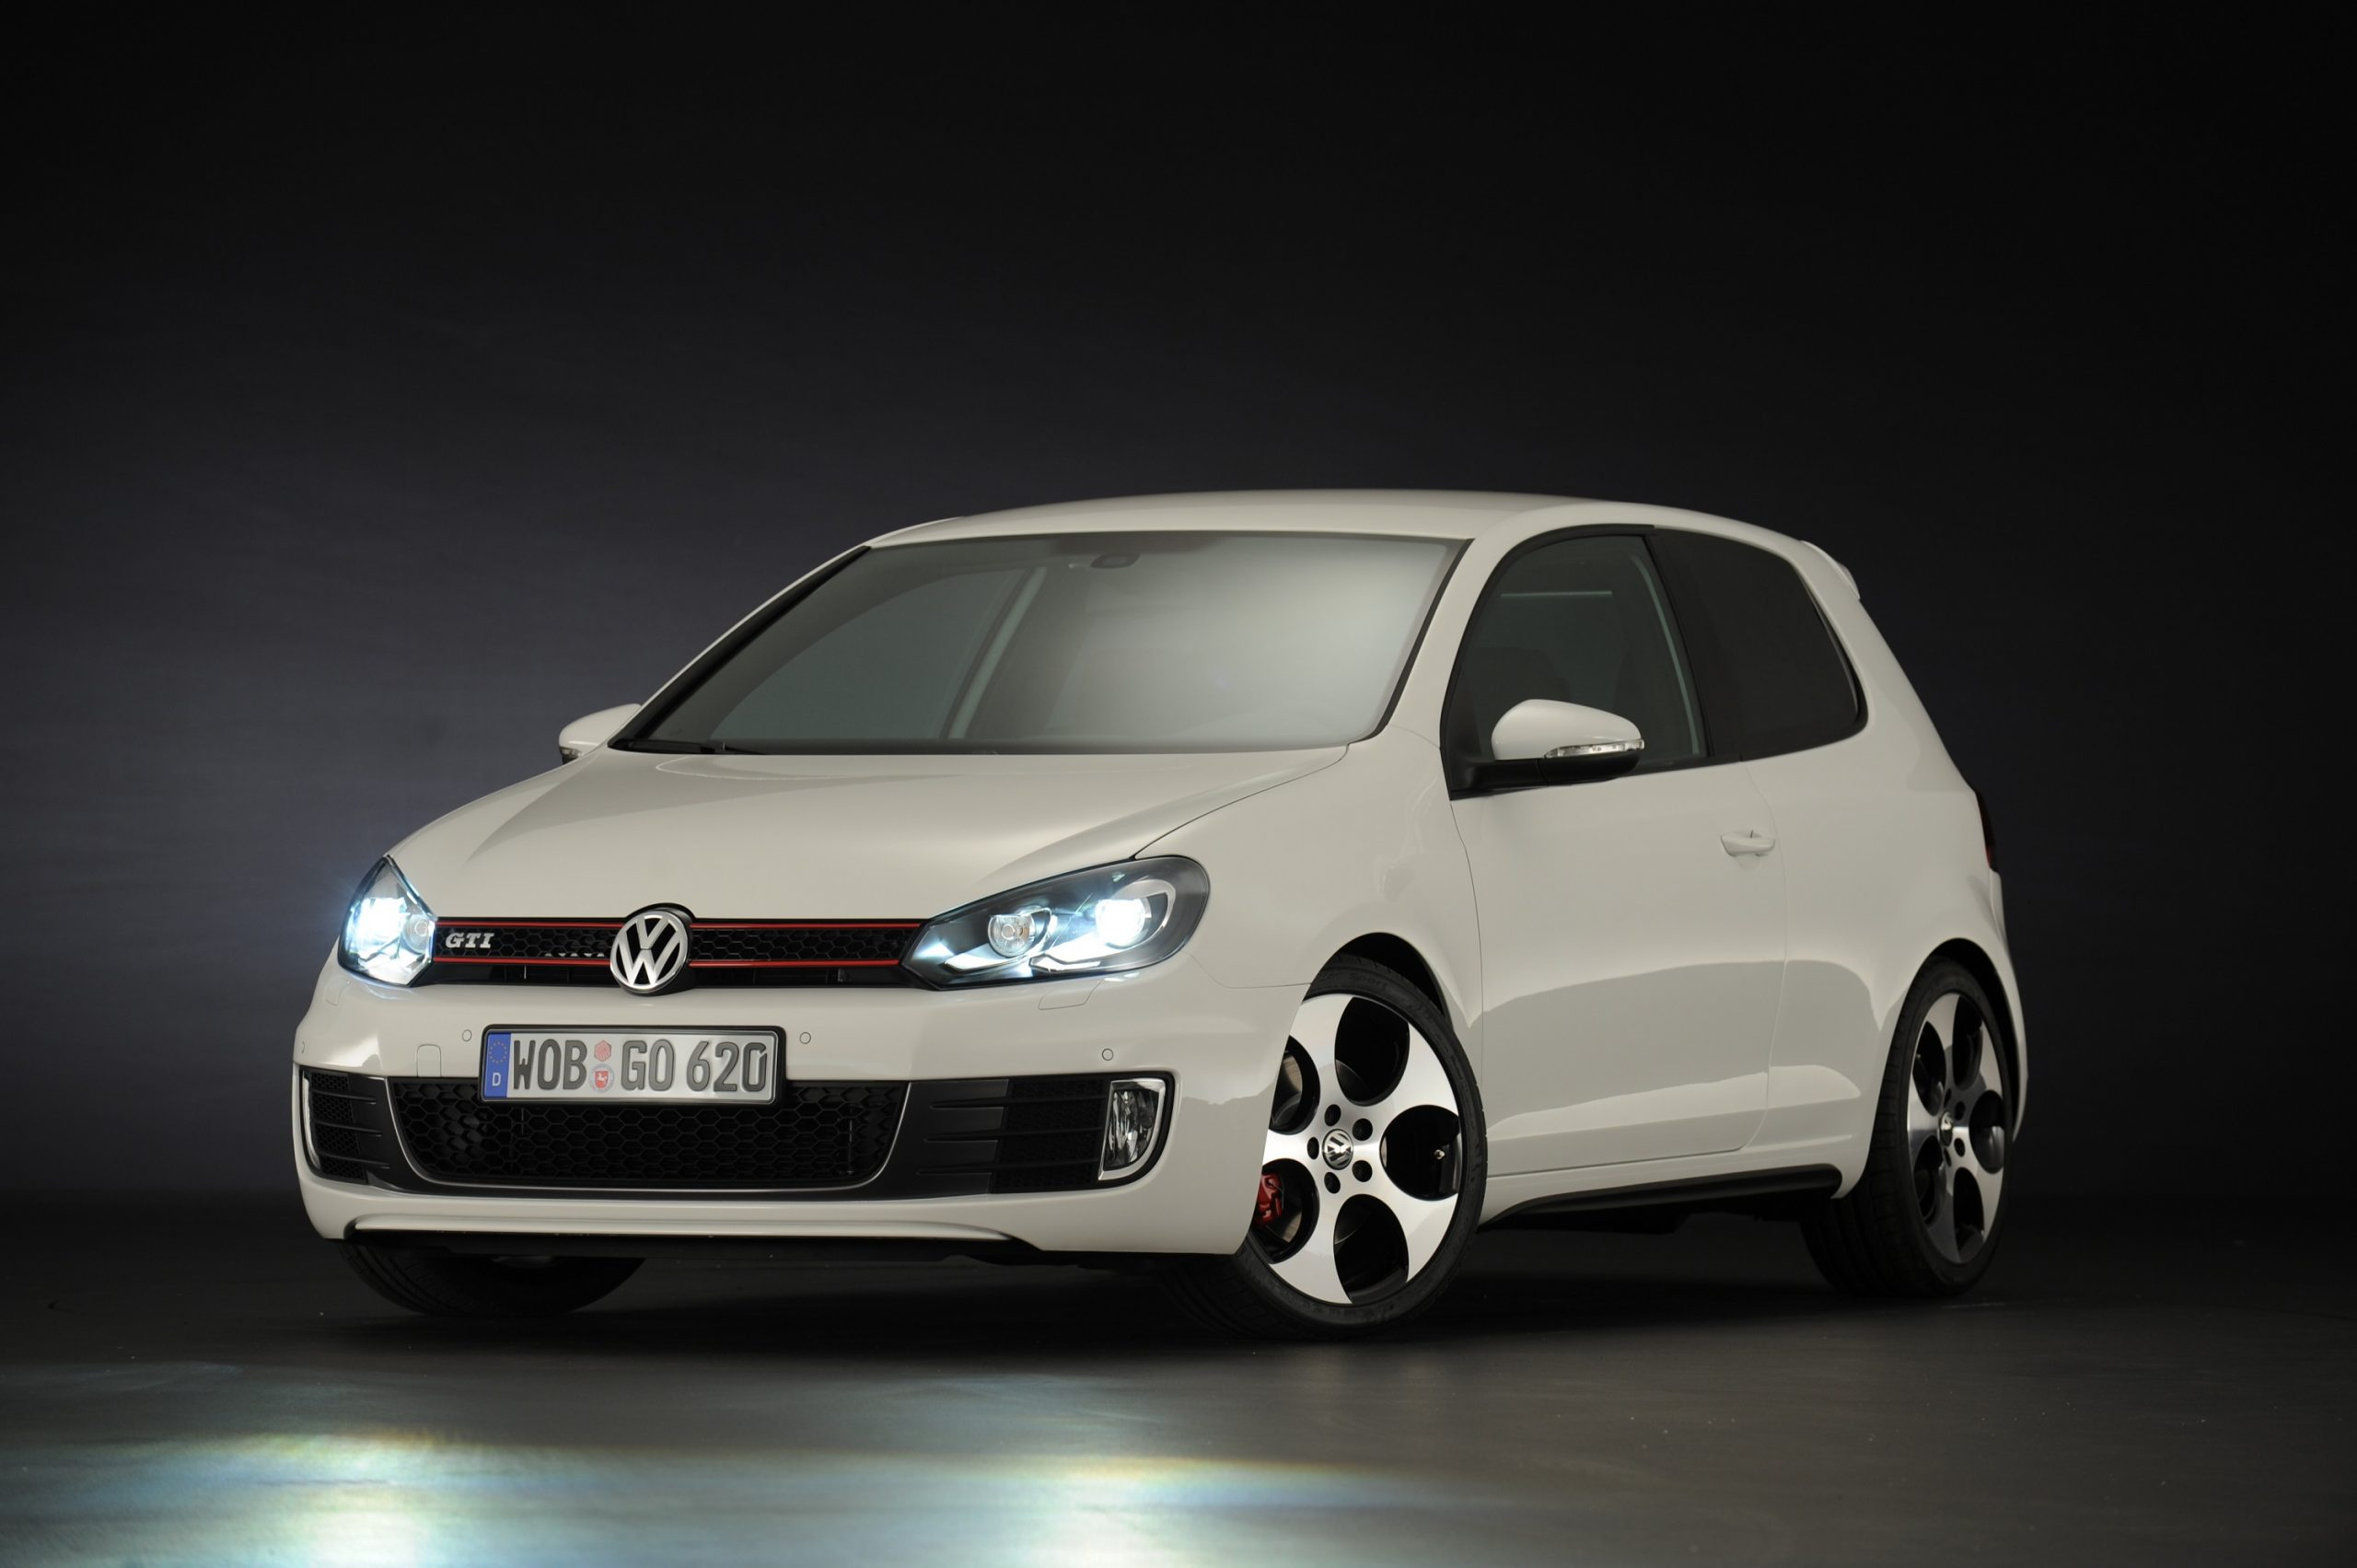 A white Volkswagen GTI shot in a photo booth from the front 3/4